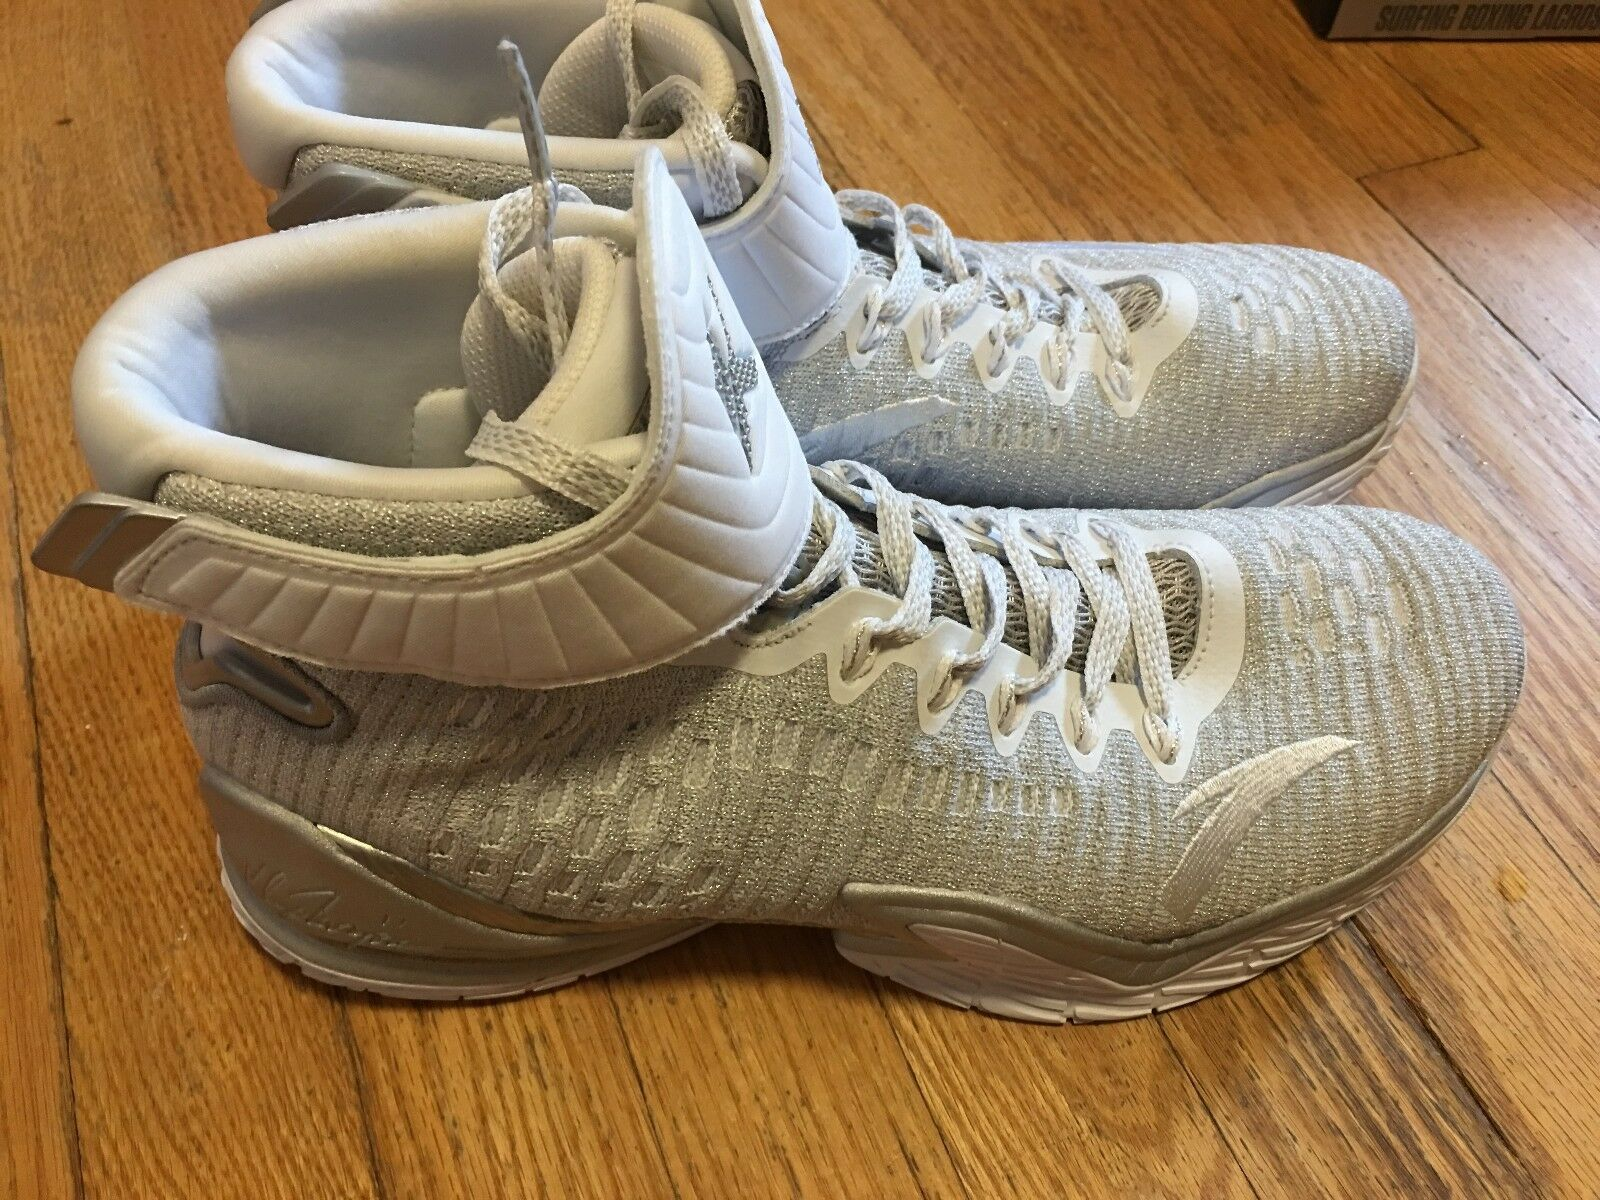 Anta KT3 all star game silver Klay Thompson KT 3 sz 10.5 Worn 2x City of Angels